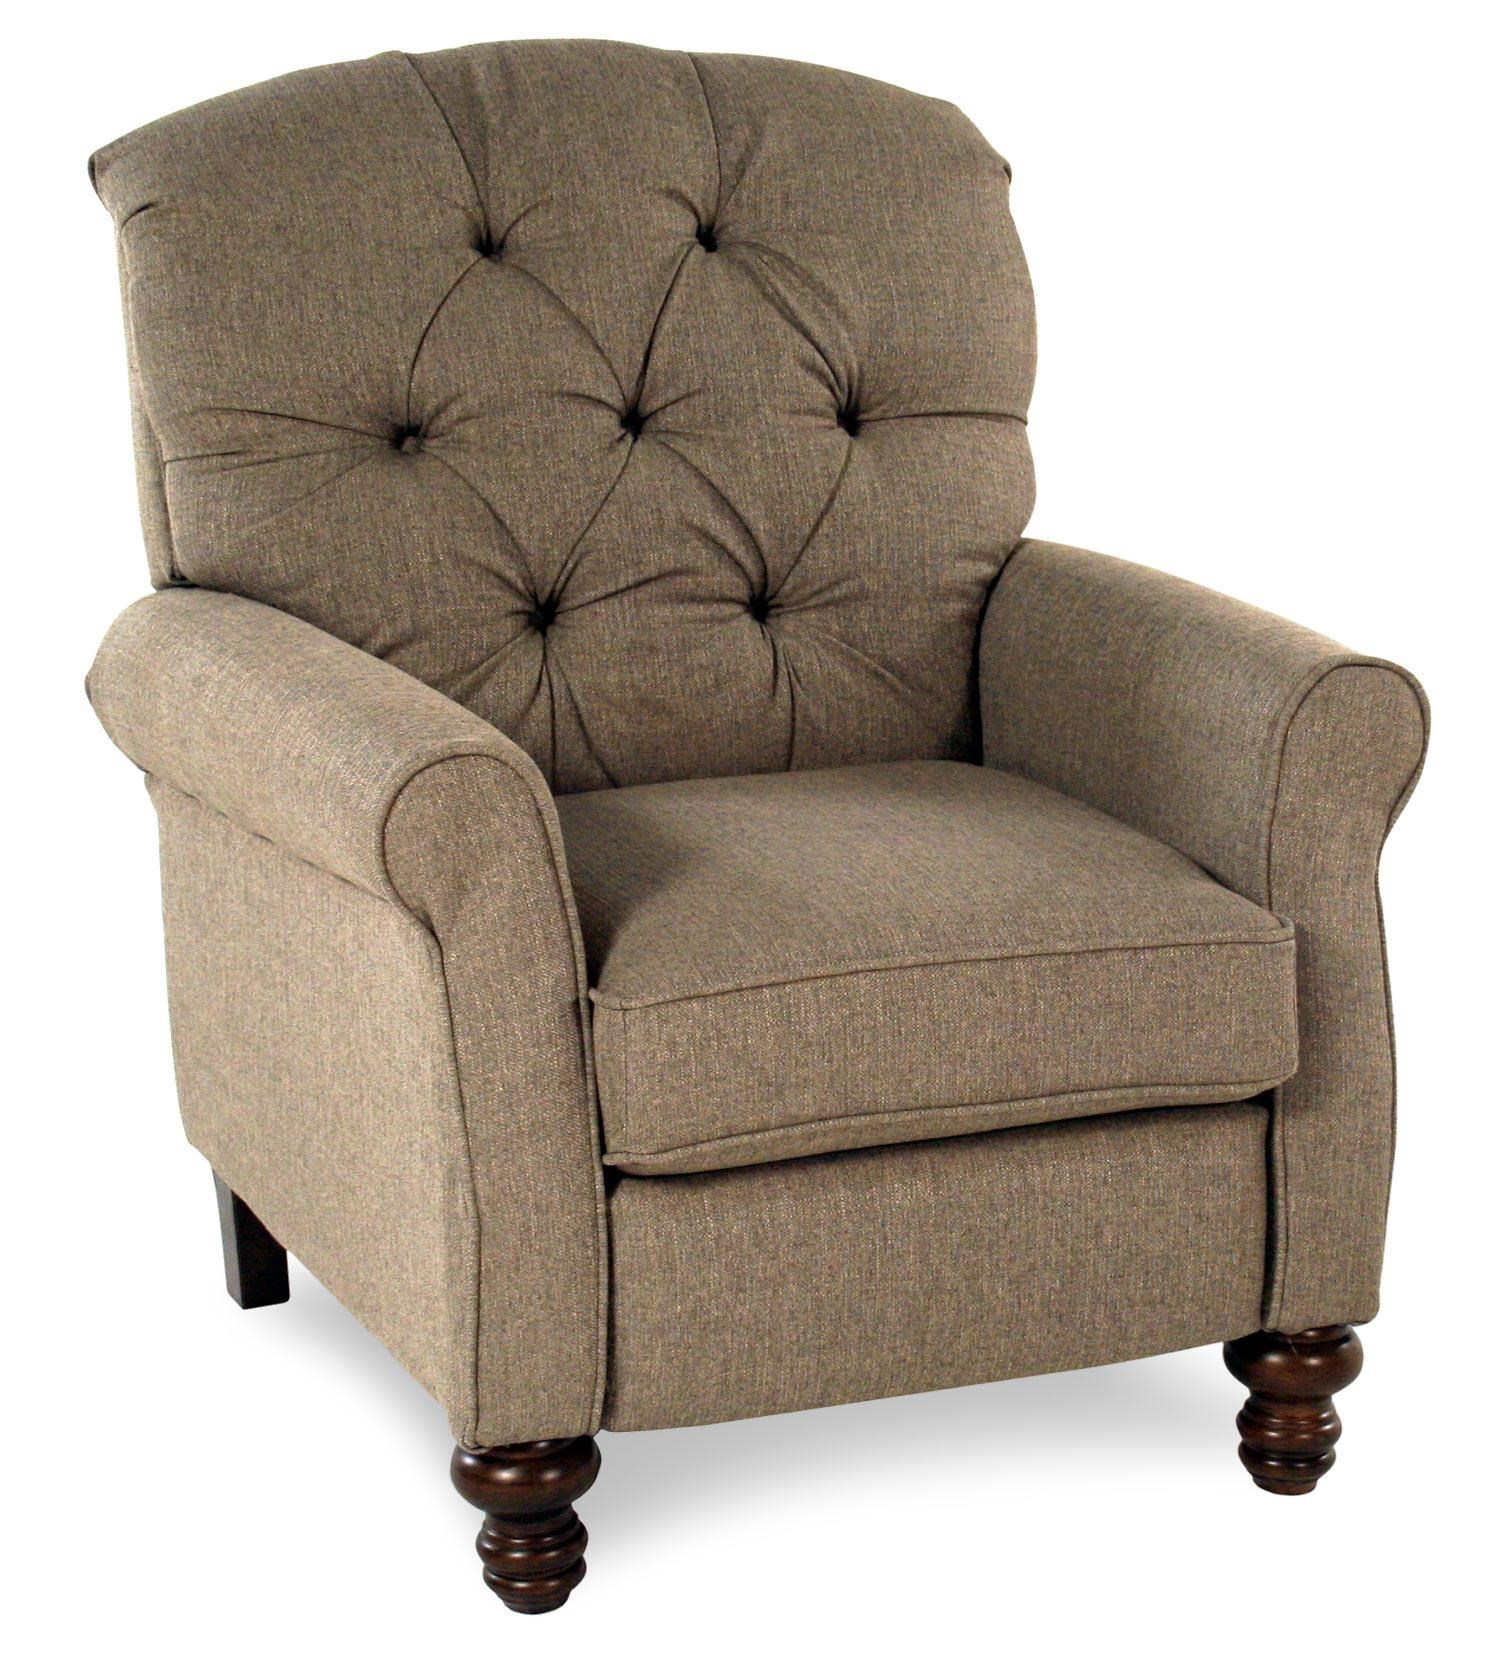 item room reclining ross hover power chair product pewter suede living faux furniture serta recliner chairs zoom to